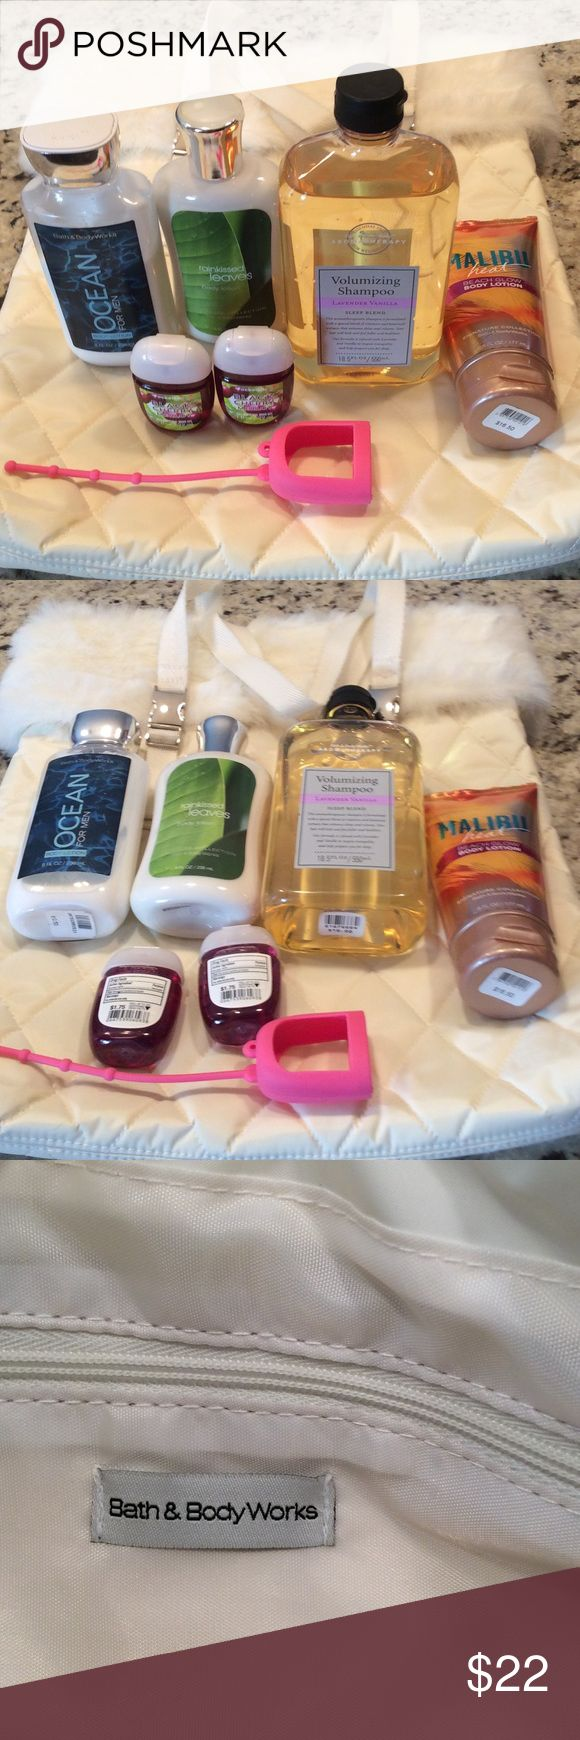 Bath and Body Works bundle 15 pieces include Malibu Heat shimmer lotion, Lavender vanilla shampoo, two lotions, 3 hand sanitizers, a pink holder, a black holder w/gold bow charm, Rain kissed leaves travel shampoo & conditioner, 3 coconut lime verbena travel soaps and a cream colored quilted bag w/ faux fur trim.  Hand sanitizer & Rain kissed leaves are new, others have been tried/sampled. Please note: there is a small stain on the handle. It may simply wash out, I haven't tried. Smoke free…